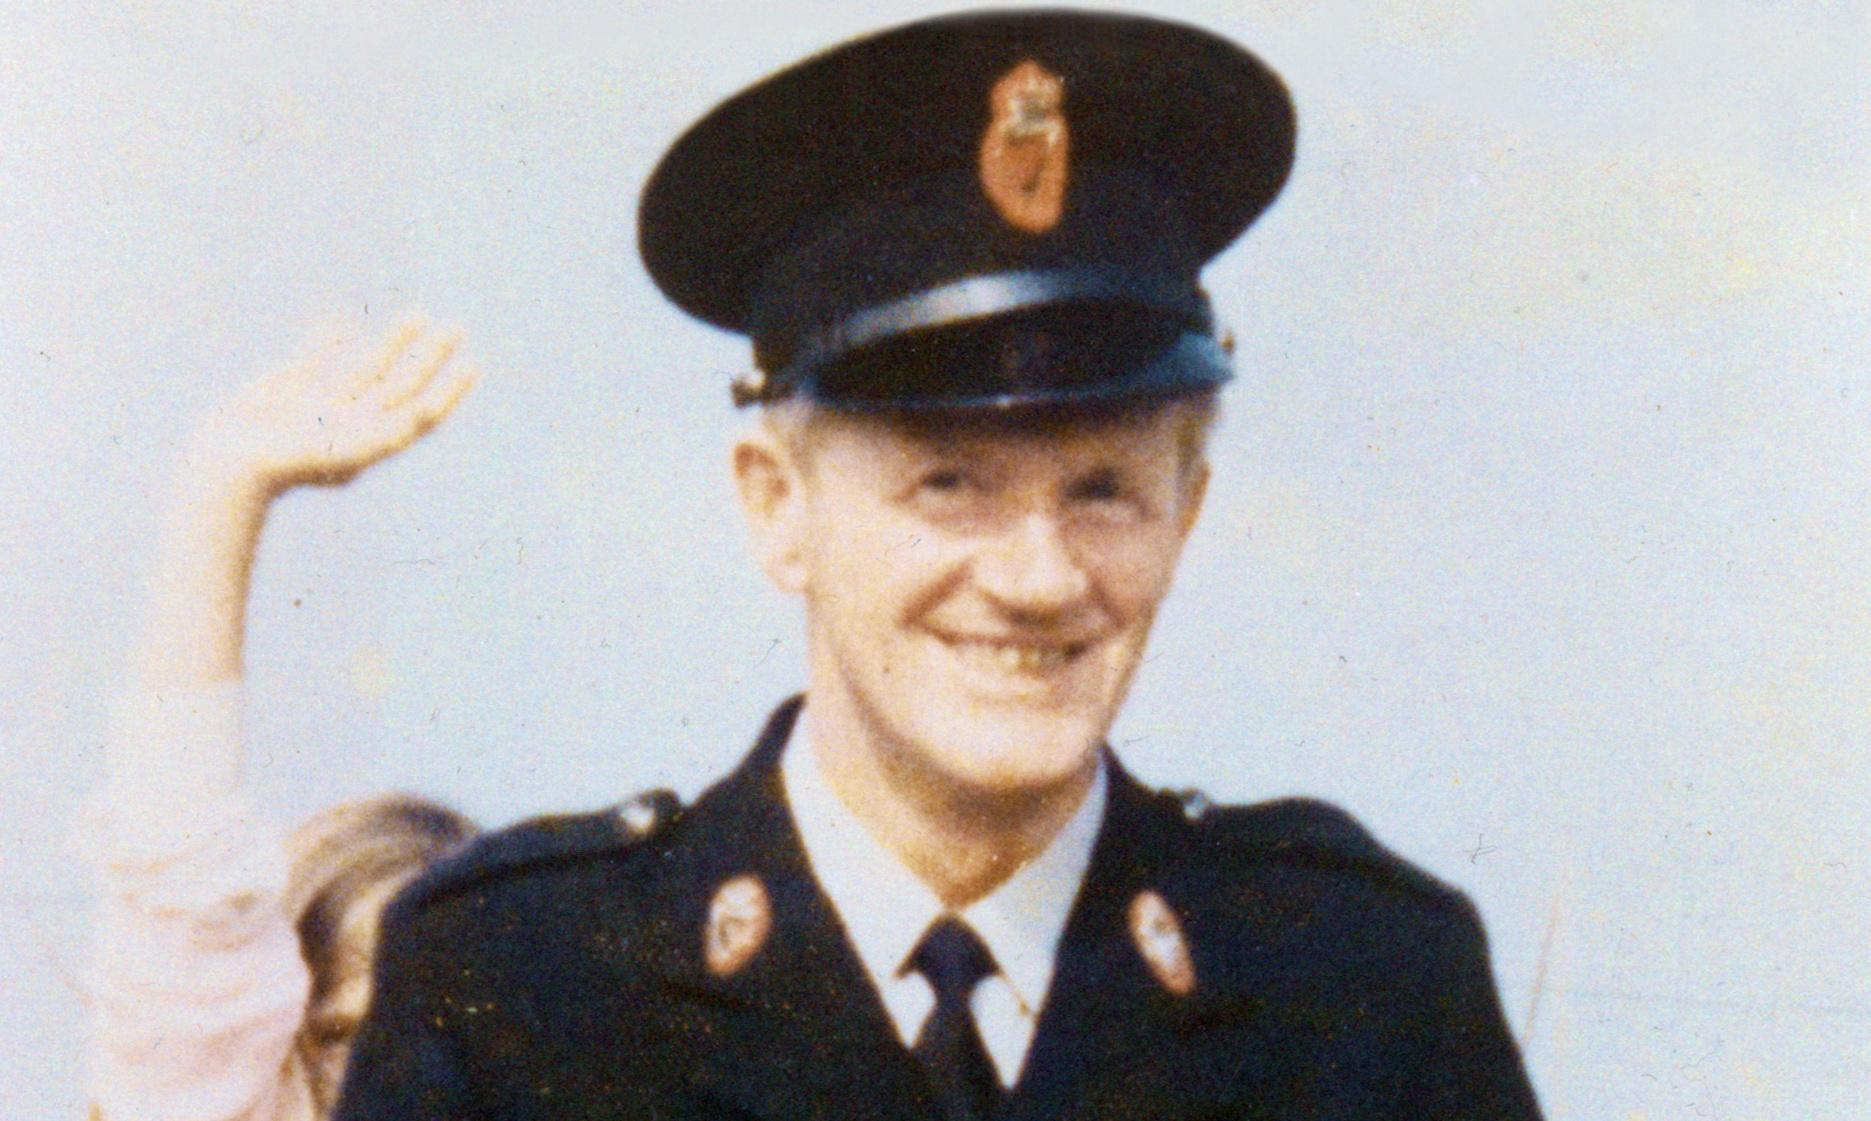 Police officer's 1977 murder linked to loyalist terrorist gang